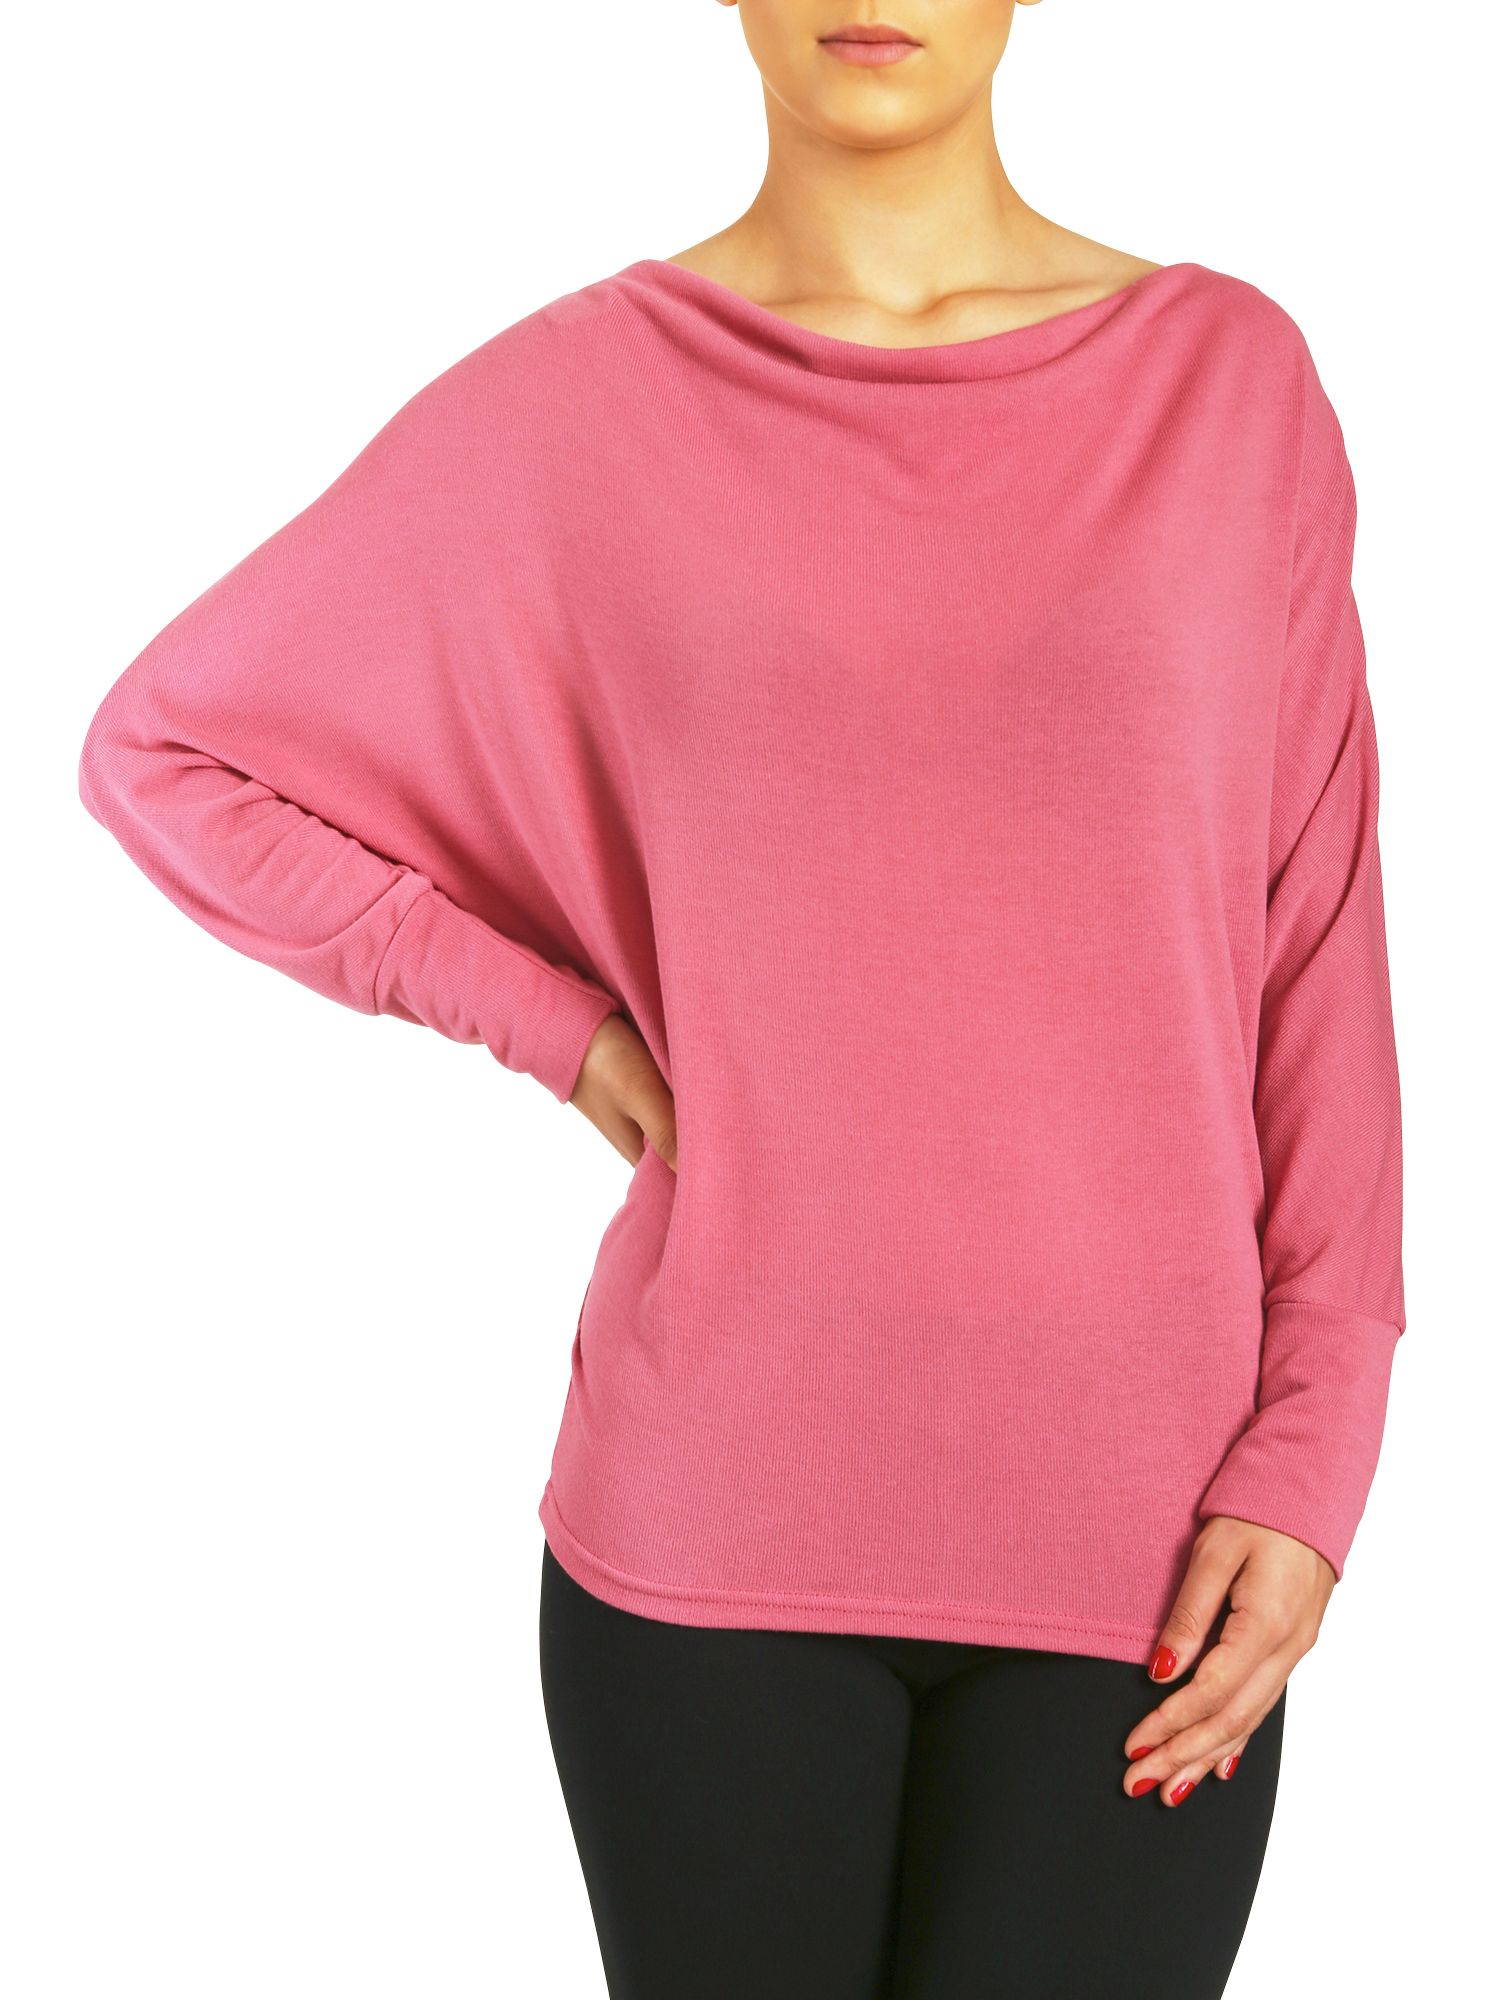 Zip detail cowl neck top